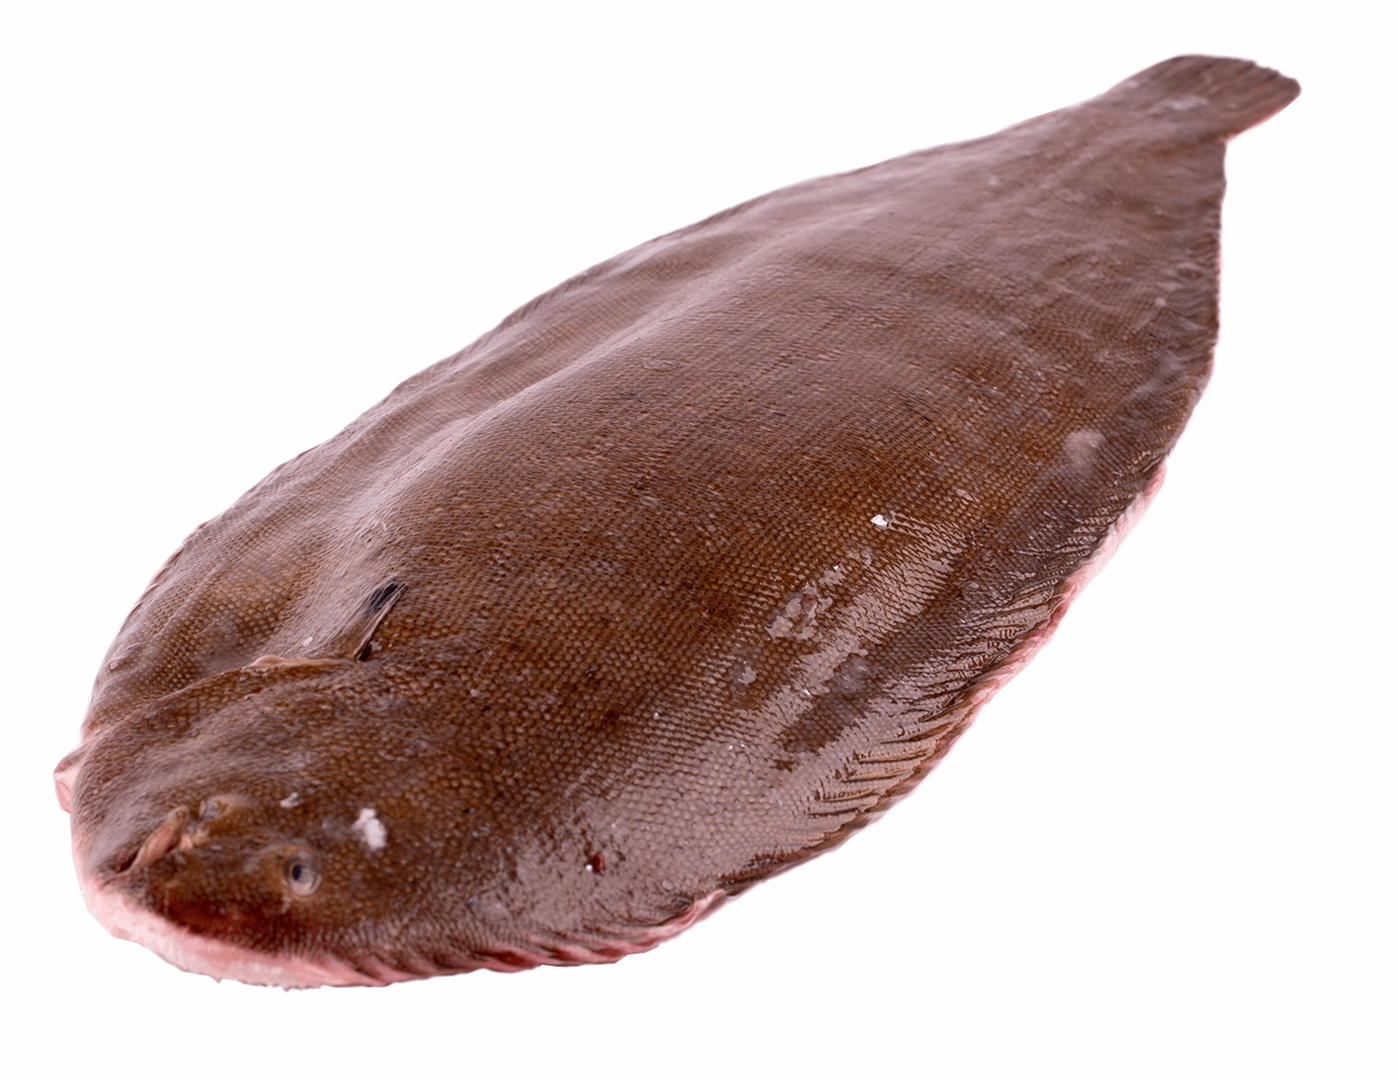 Productafbeelding DOVERSOLE WITH SKIN SIZE: 500-600GR FRESH